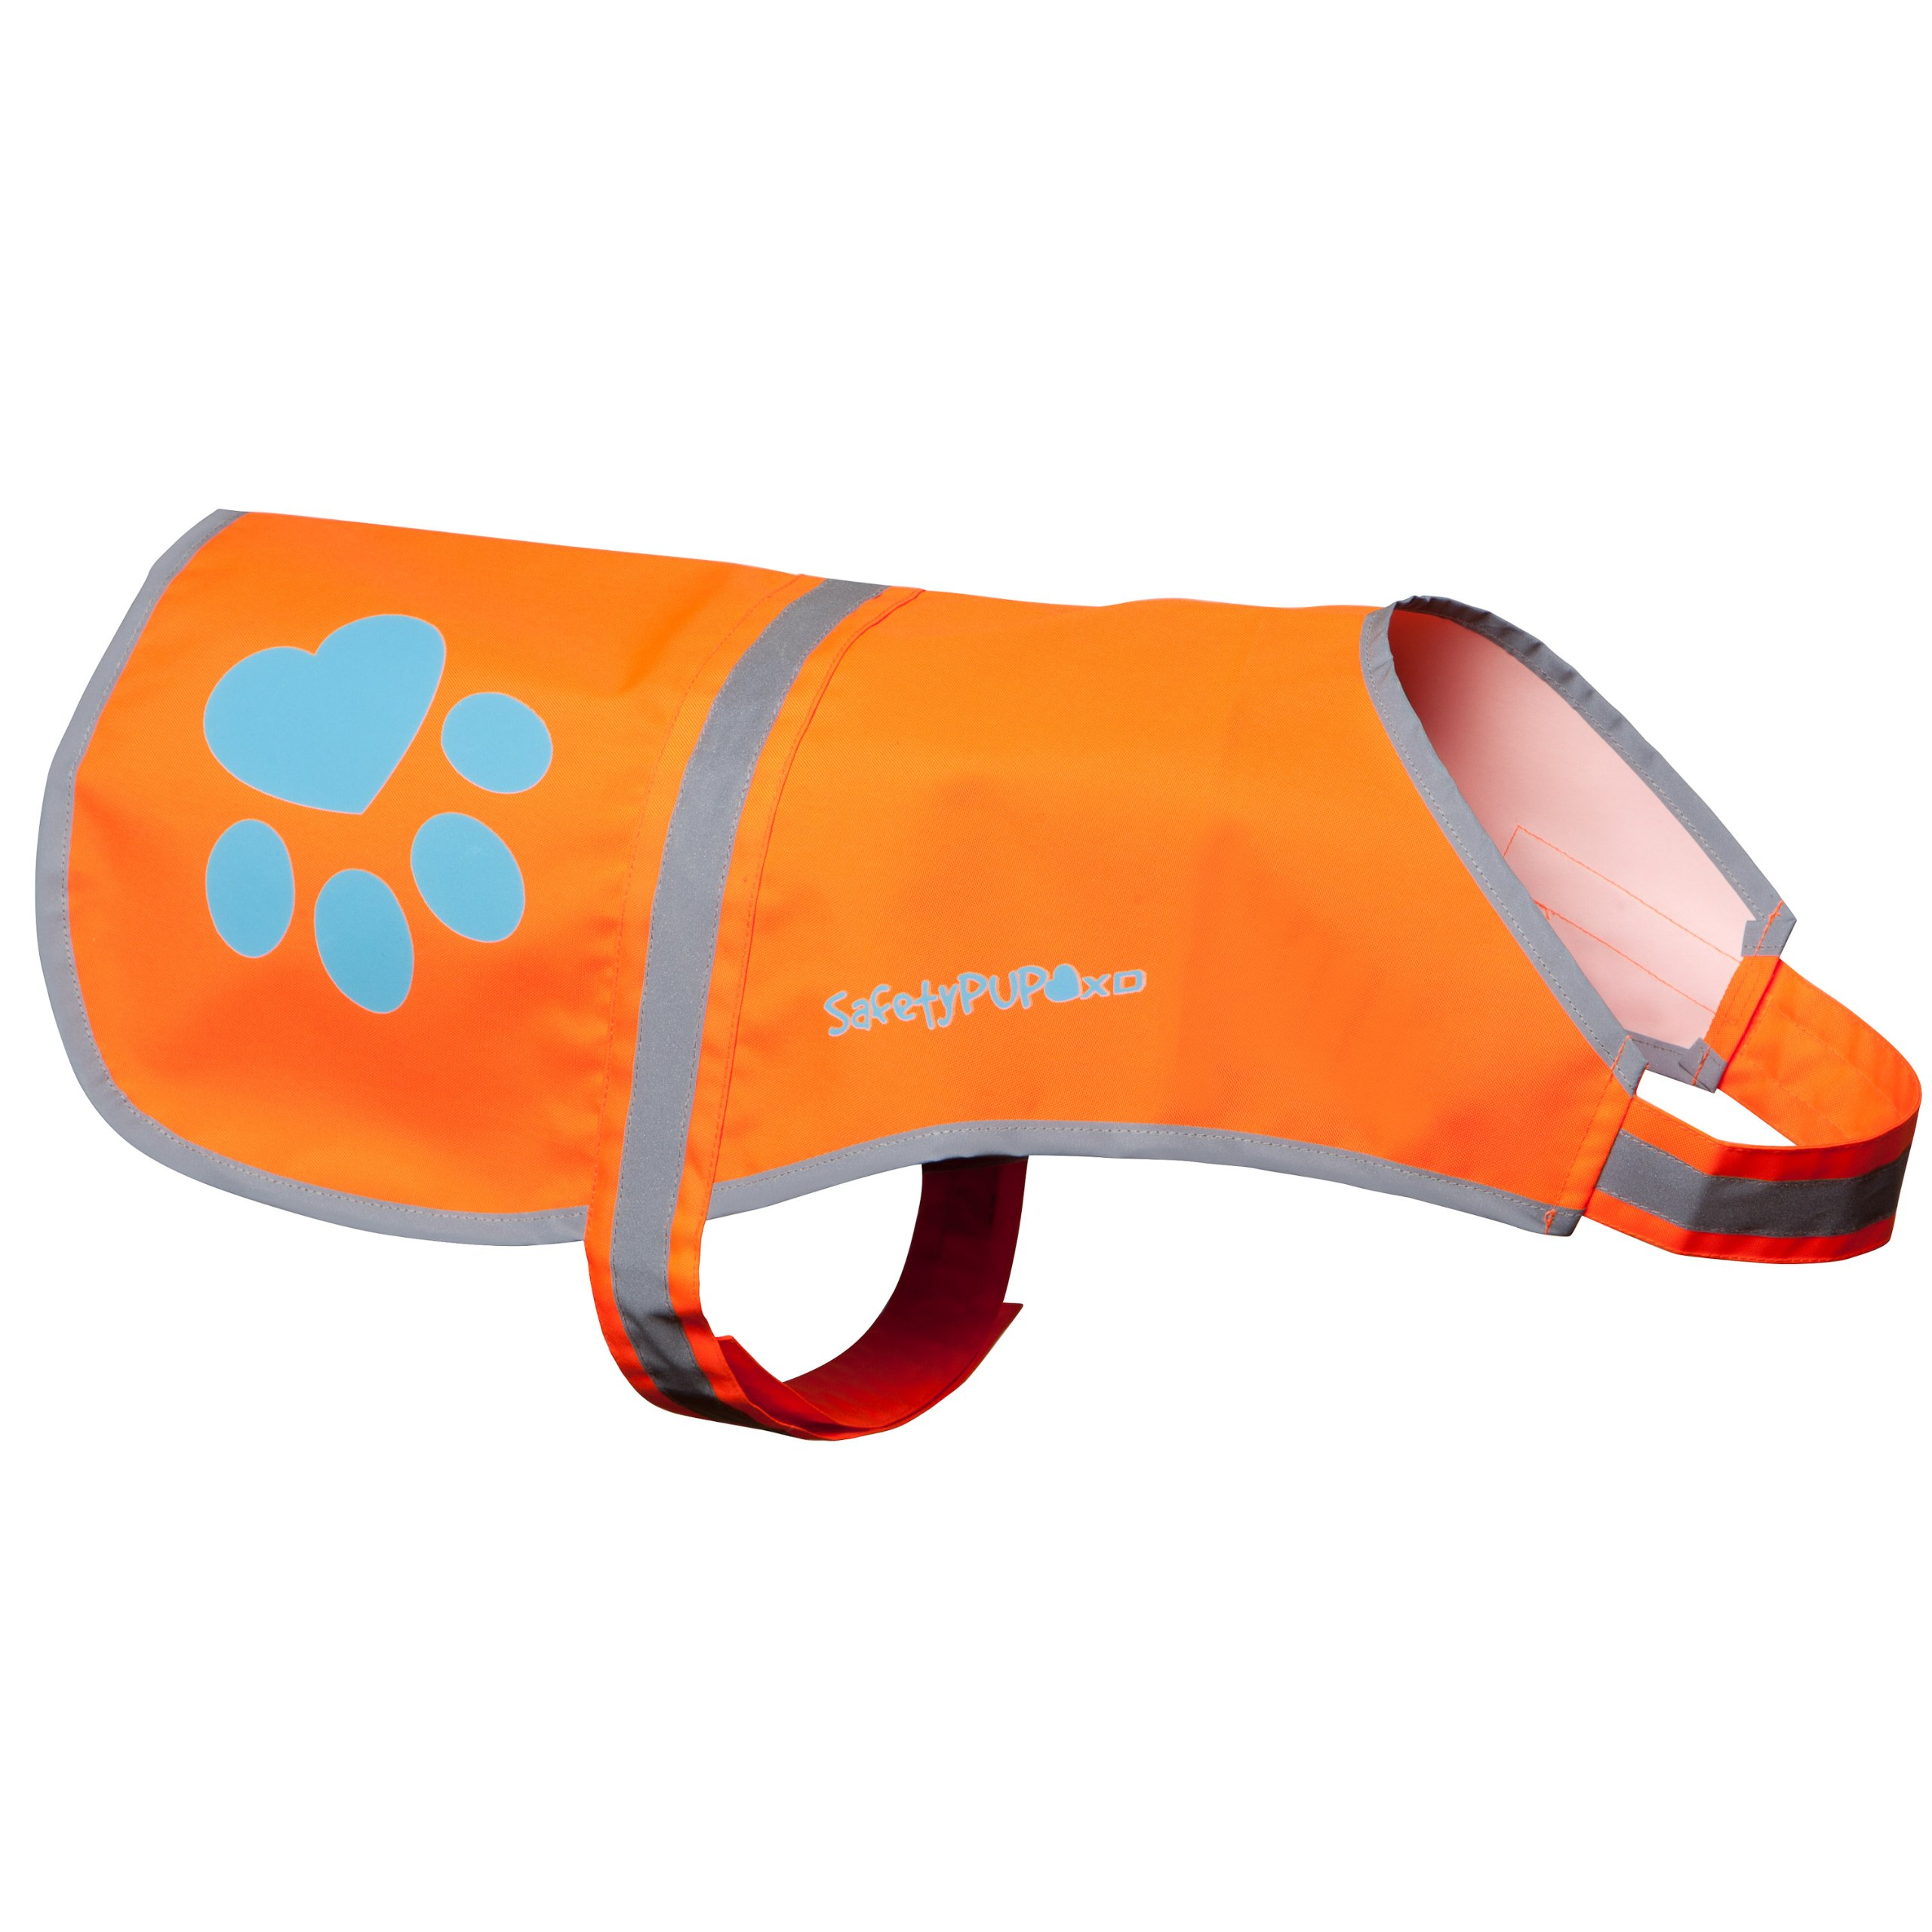 Dog Reflective Vest. Sizes To Fit Dogs 14 lbs To 130 lbs. Blaze Orange Hi Vis Dog Vest Protects Dogs From Cars & Hunting Accidents. (X-Large 100 lbs - 130 lbs)